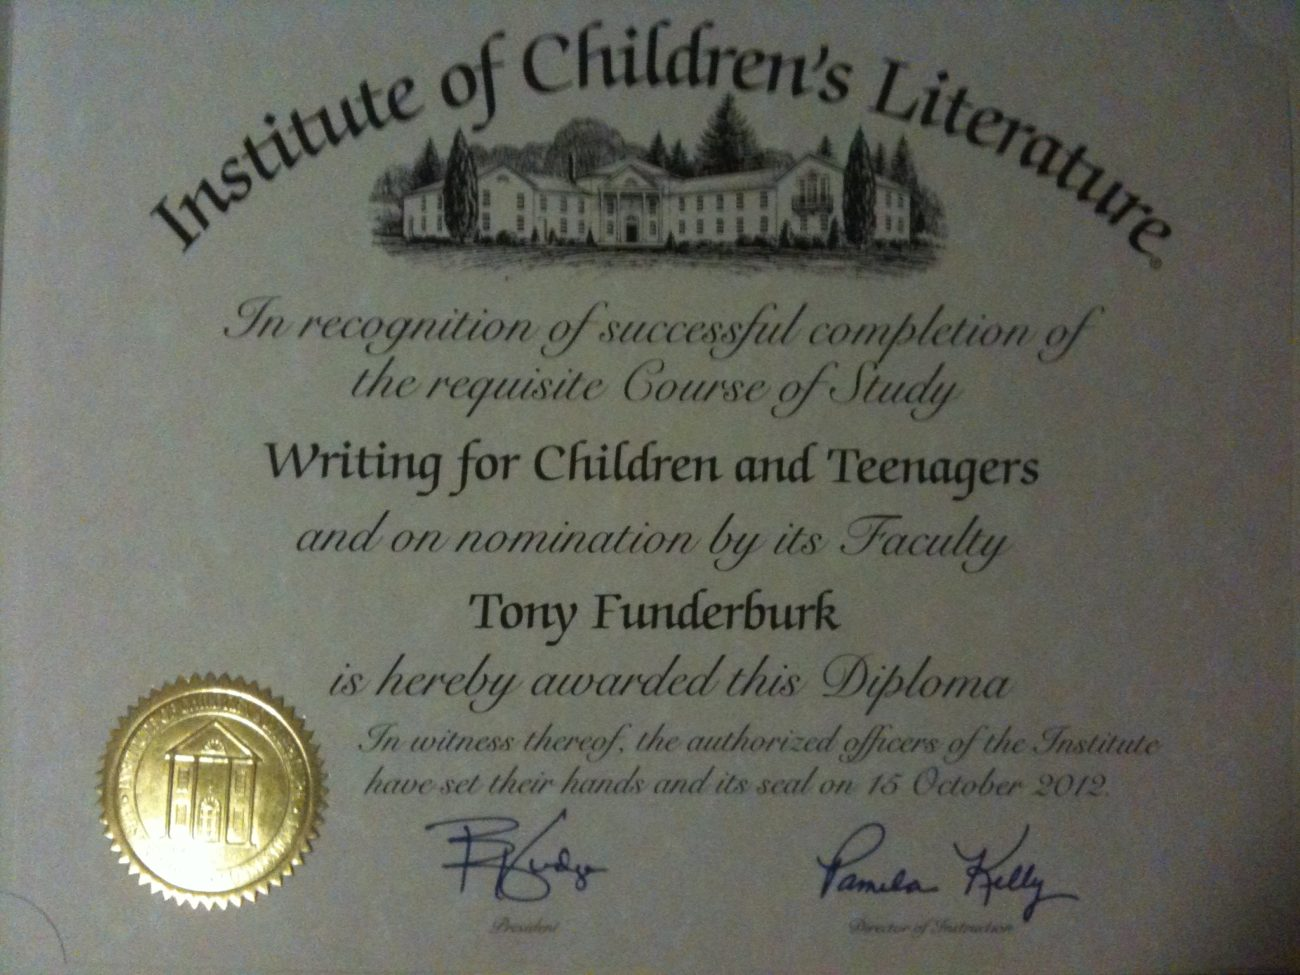 Singer songwriter, children's writer and illustrator Tony Funderburk shares his diploma from the Institute of Children's Literature.